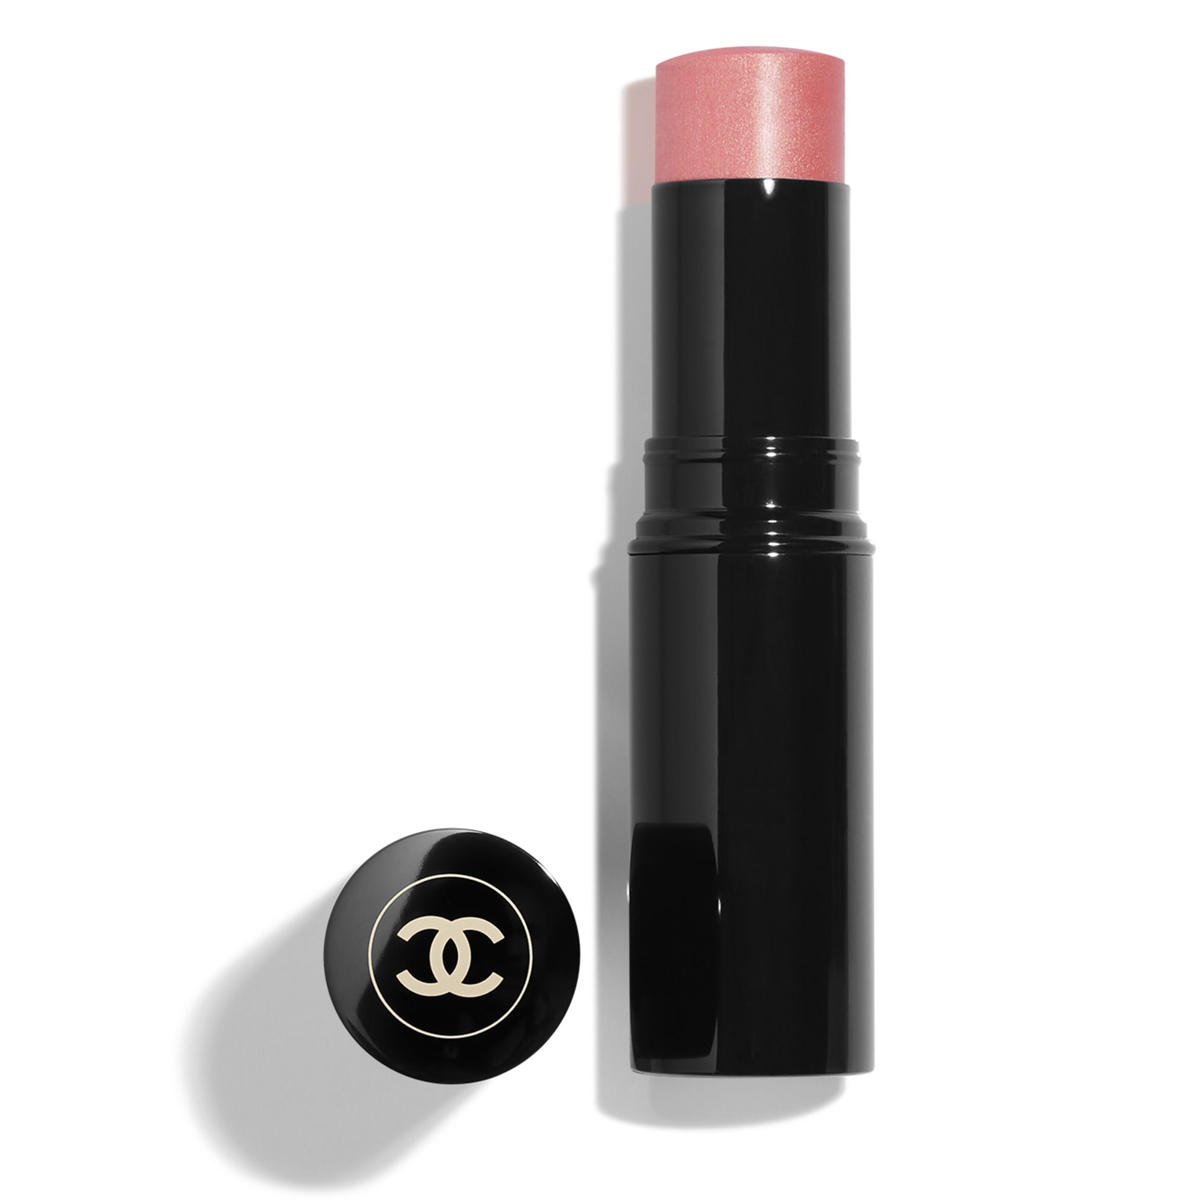 Chanel Les Beiges Healthy Glow Sheer Colour Stick Blush 23